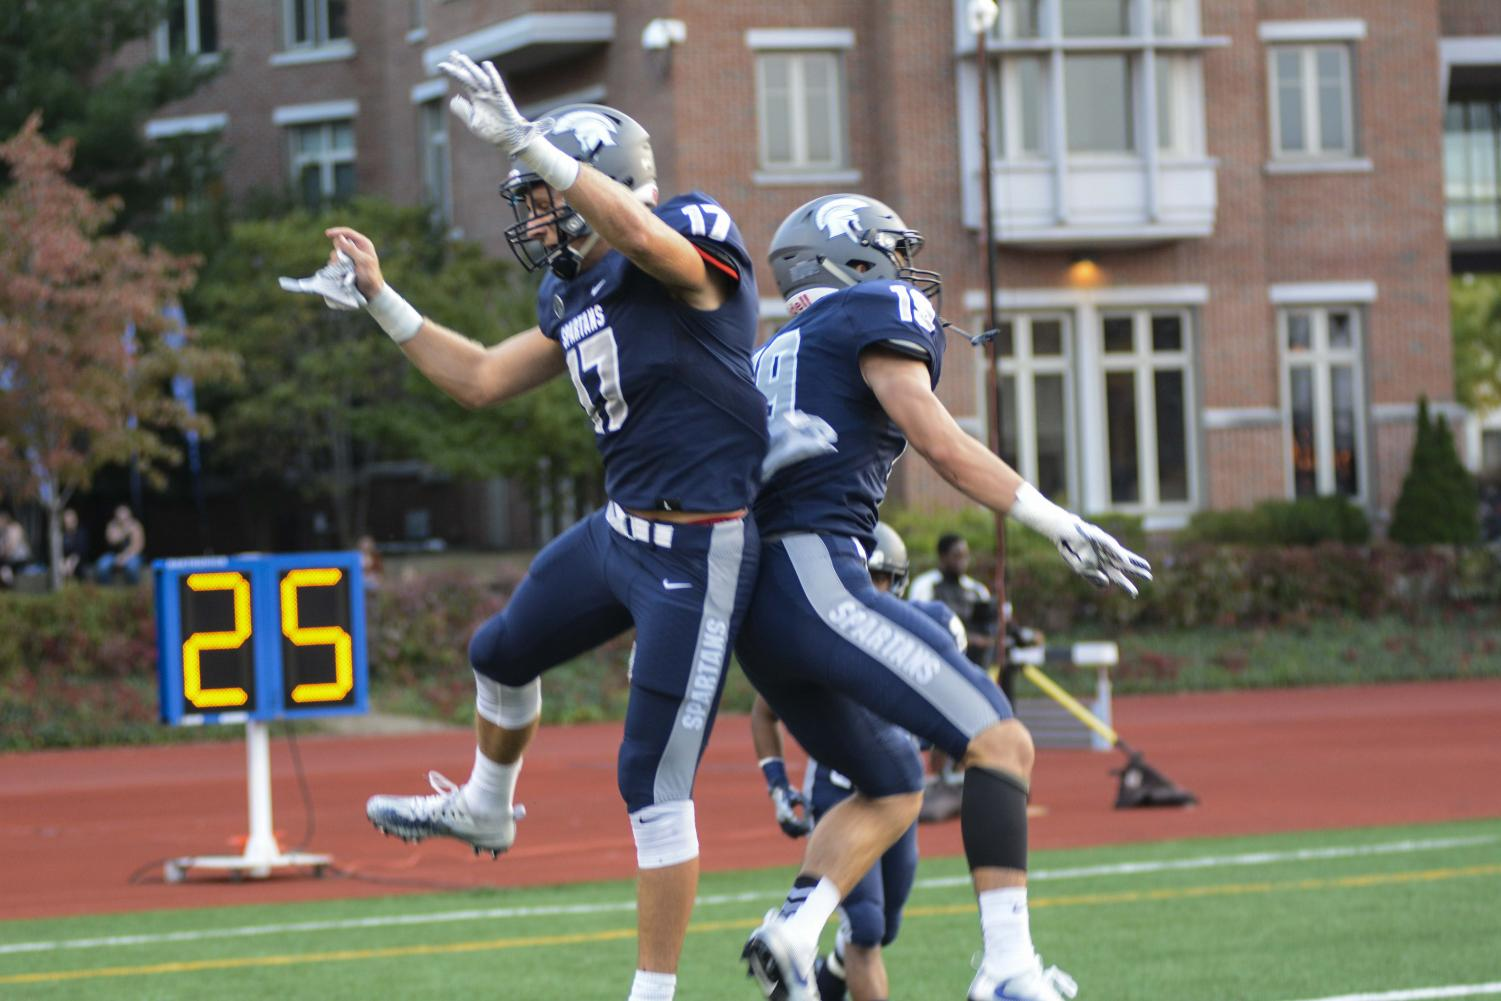 Wide receivers Giuseppe Orsini and Joey Spitalli celebrate following a touchdown earlier in the season.